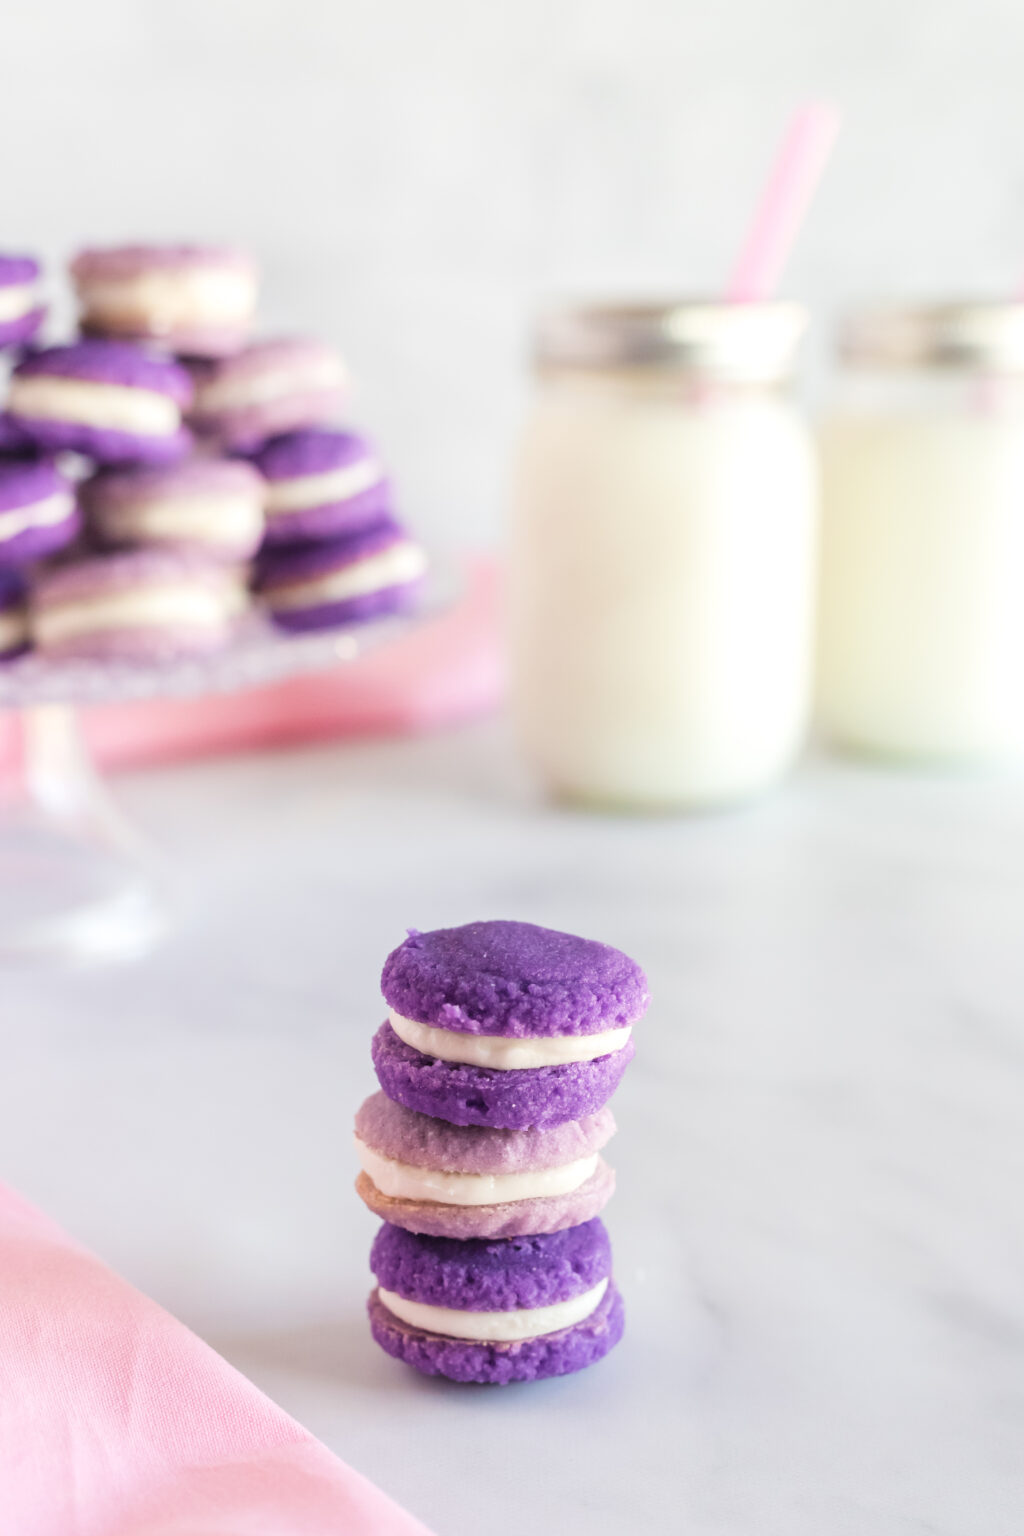 Lavender Macarons stacked on table with milk in background